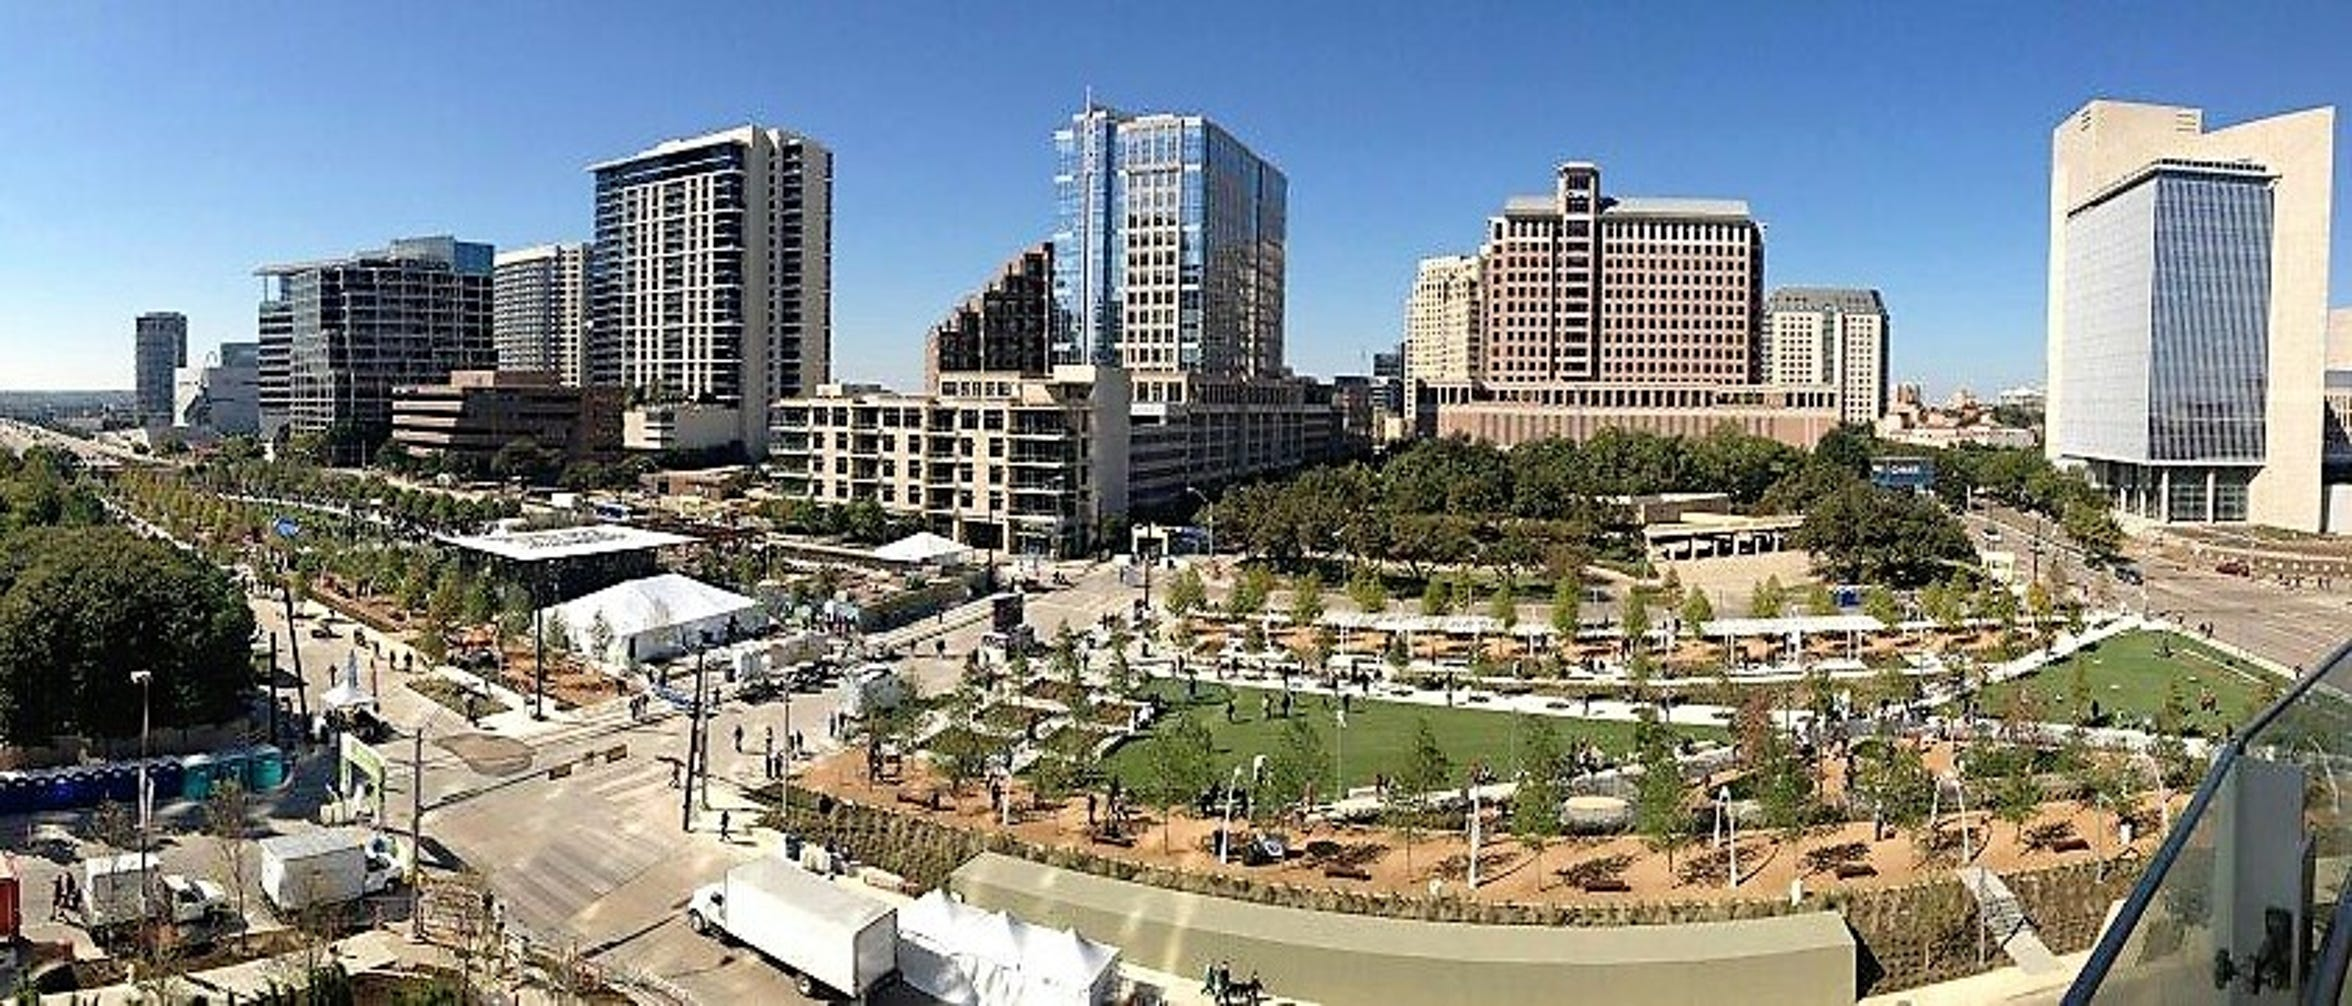 The 5.2-acre Klyde Warren Park in Dallas is built on a deck over the recessed, eight-lane Woodall Rodgers Freeway.